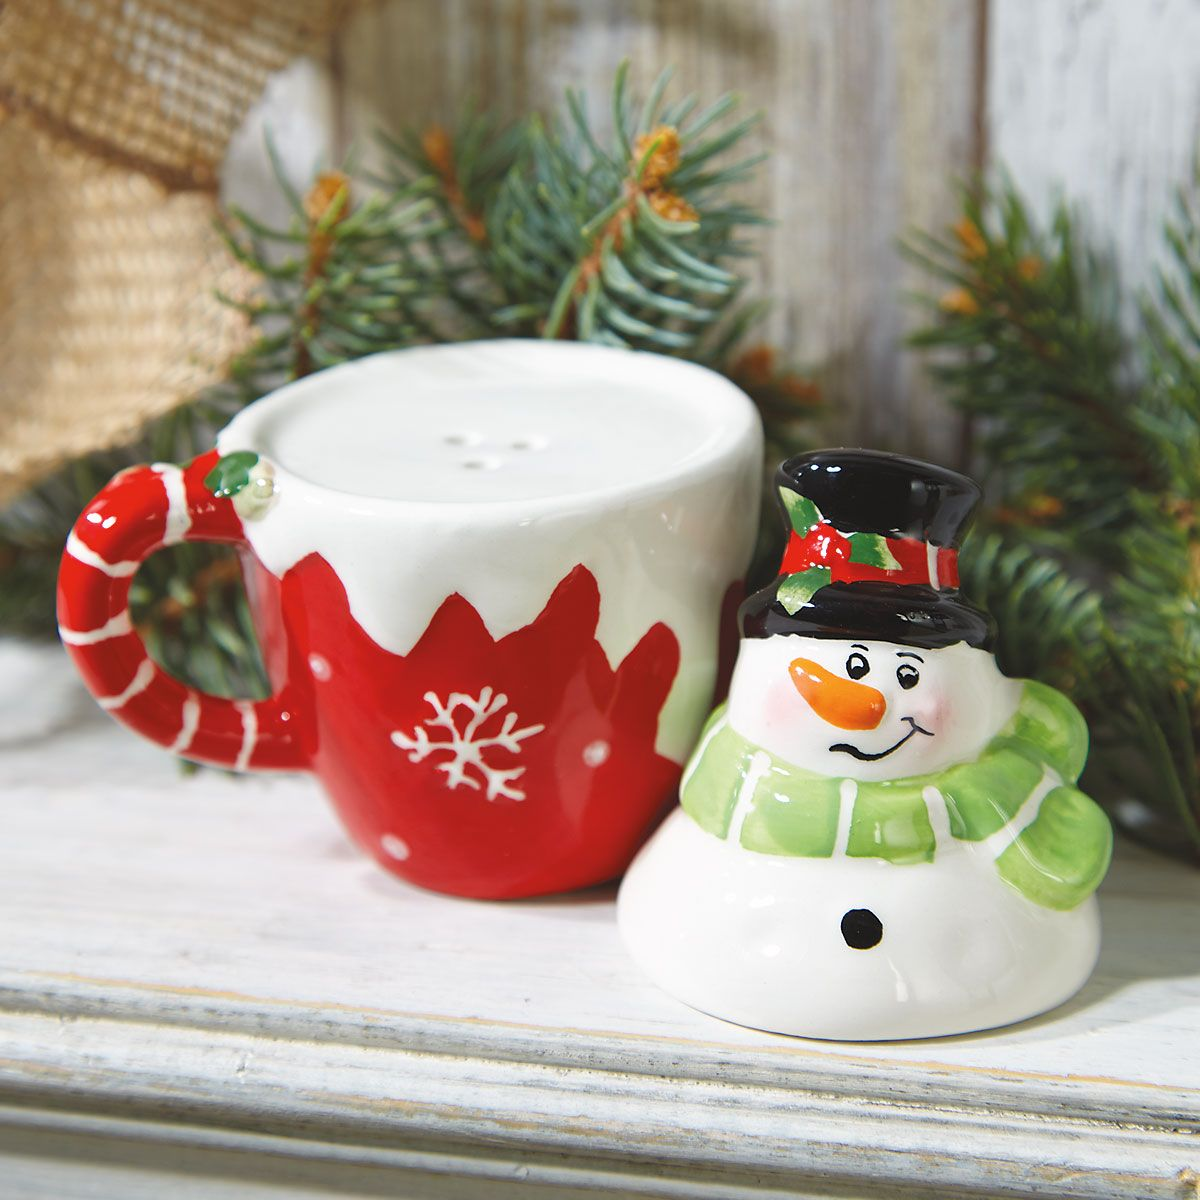 Stacking Snowman Salt & Pepper Shakers